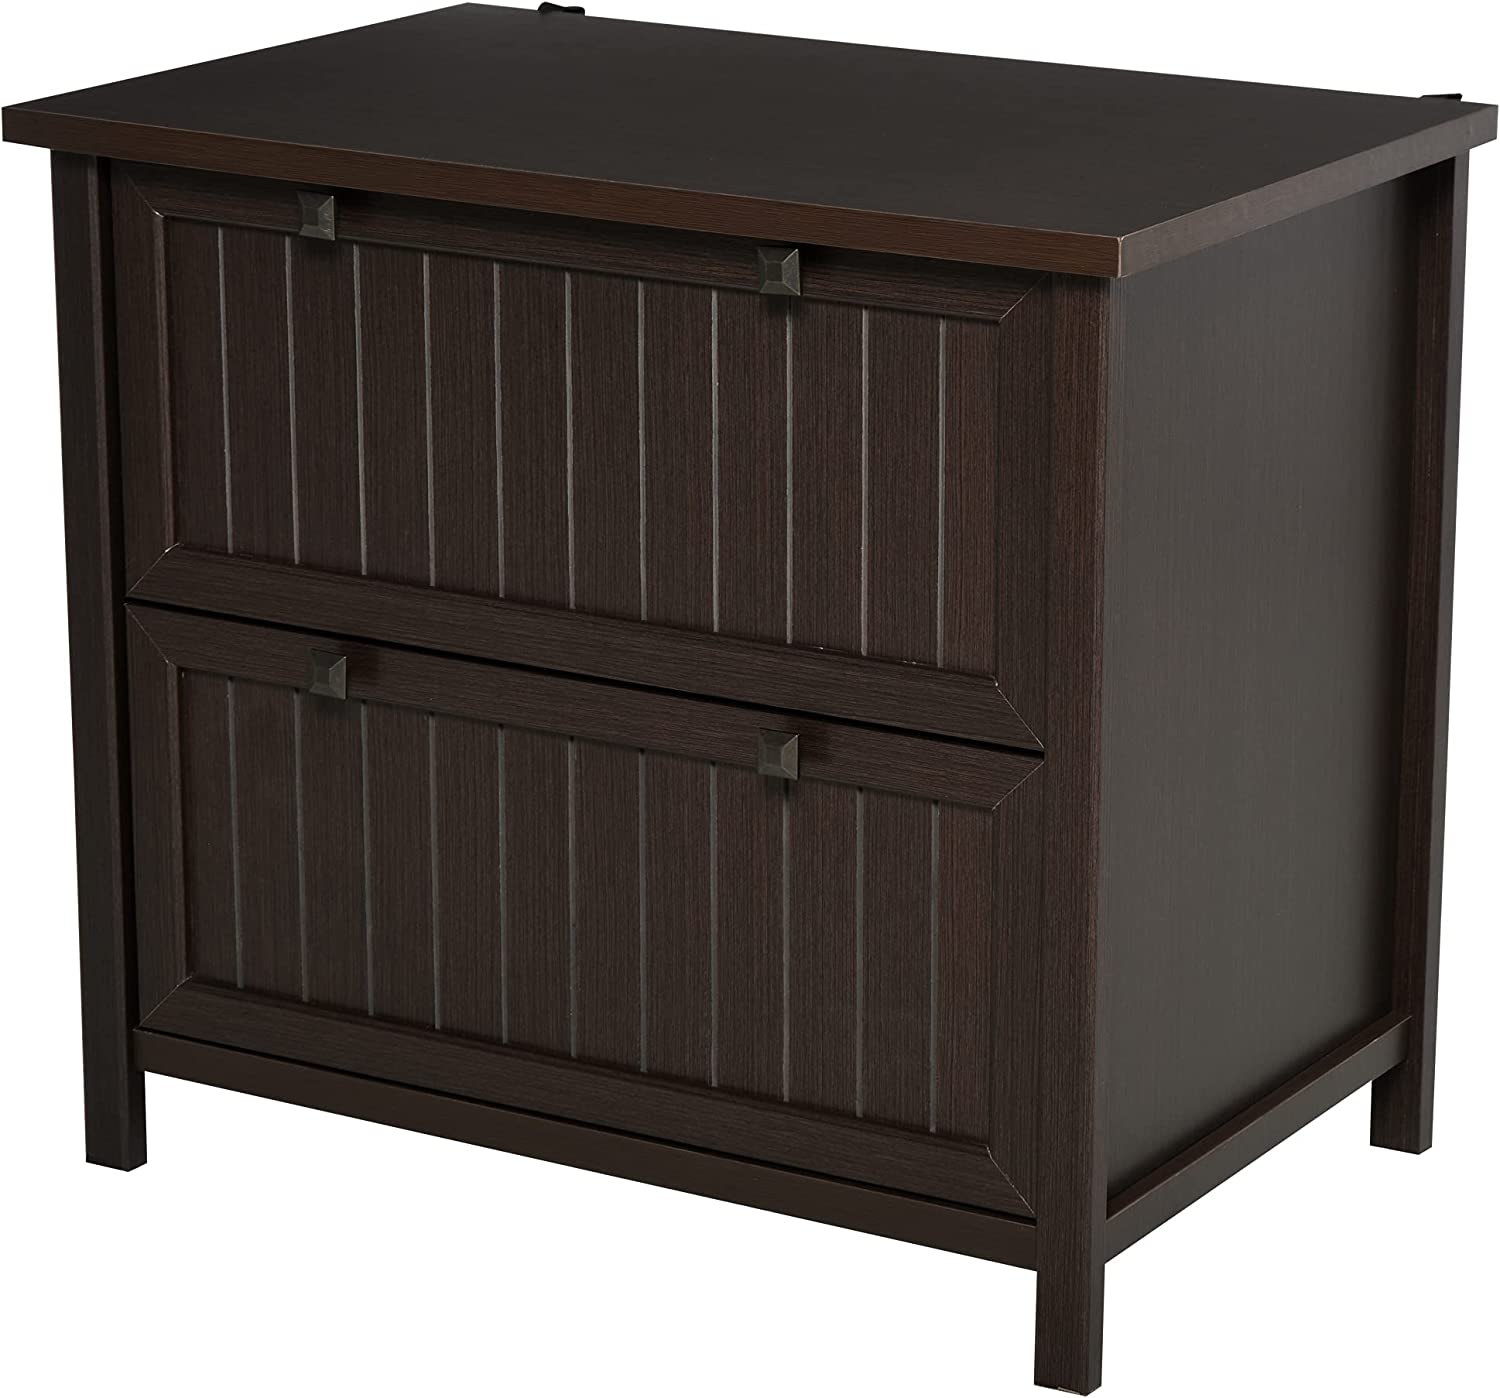 HOMCOM Retro Style 2-Drawer Virginia Beach Mall Lateral File Wooden Do Cabinet Chest Inexpensive